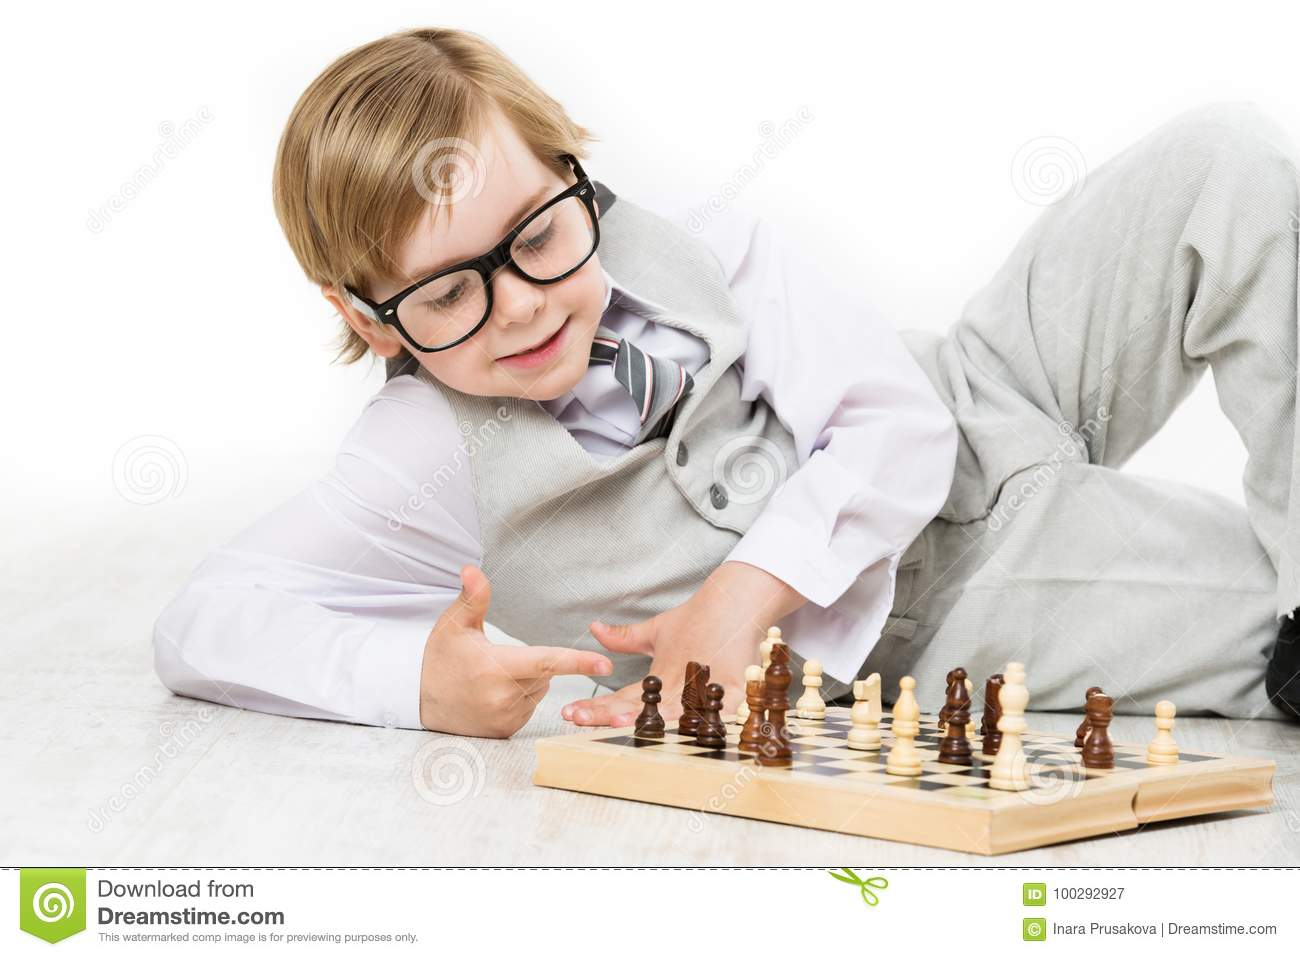 Child Playing Chess, Smart Kid Boy in Business Suit Glasses Play